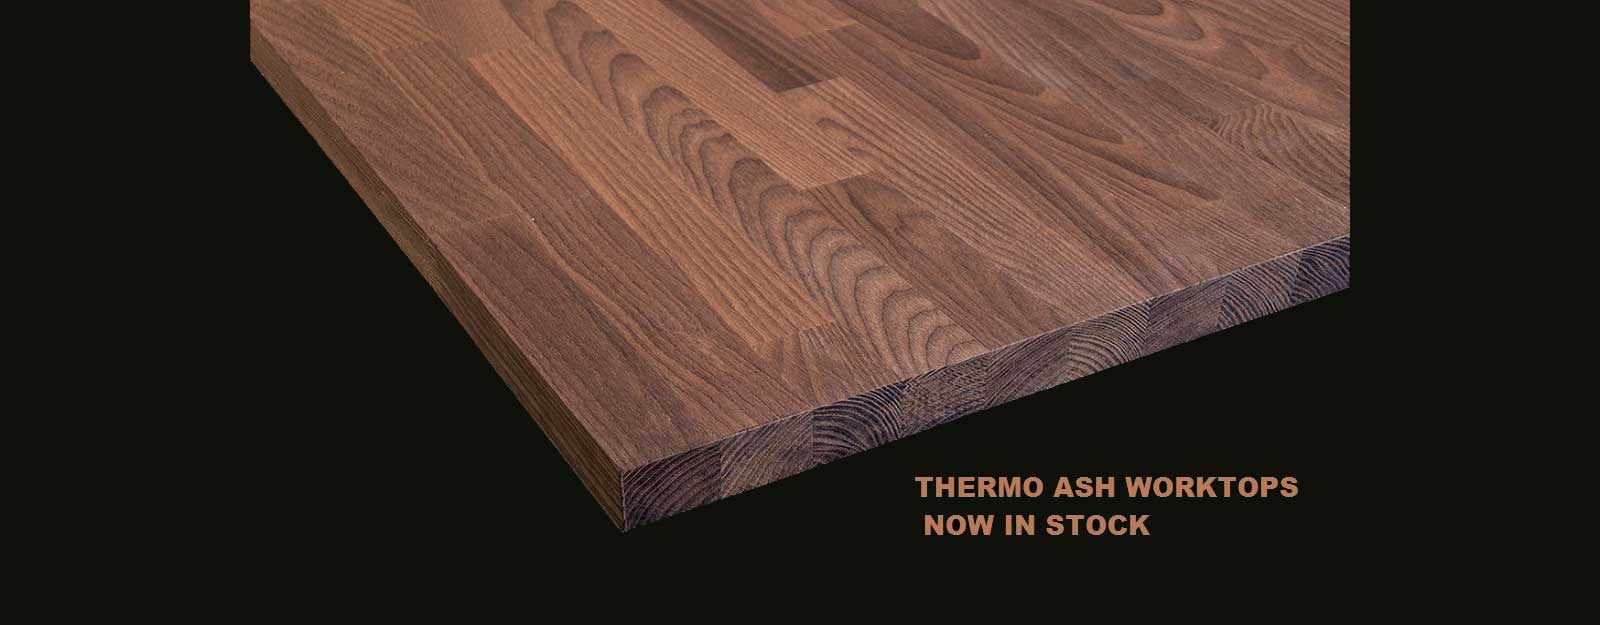 Abbey woods hardwood and softwood timber decking accoya for Wood decking boards for sale